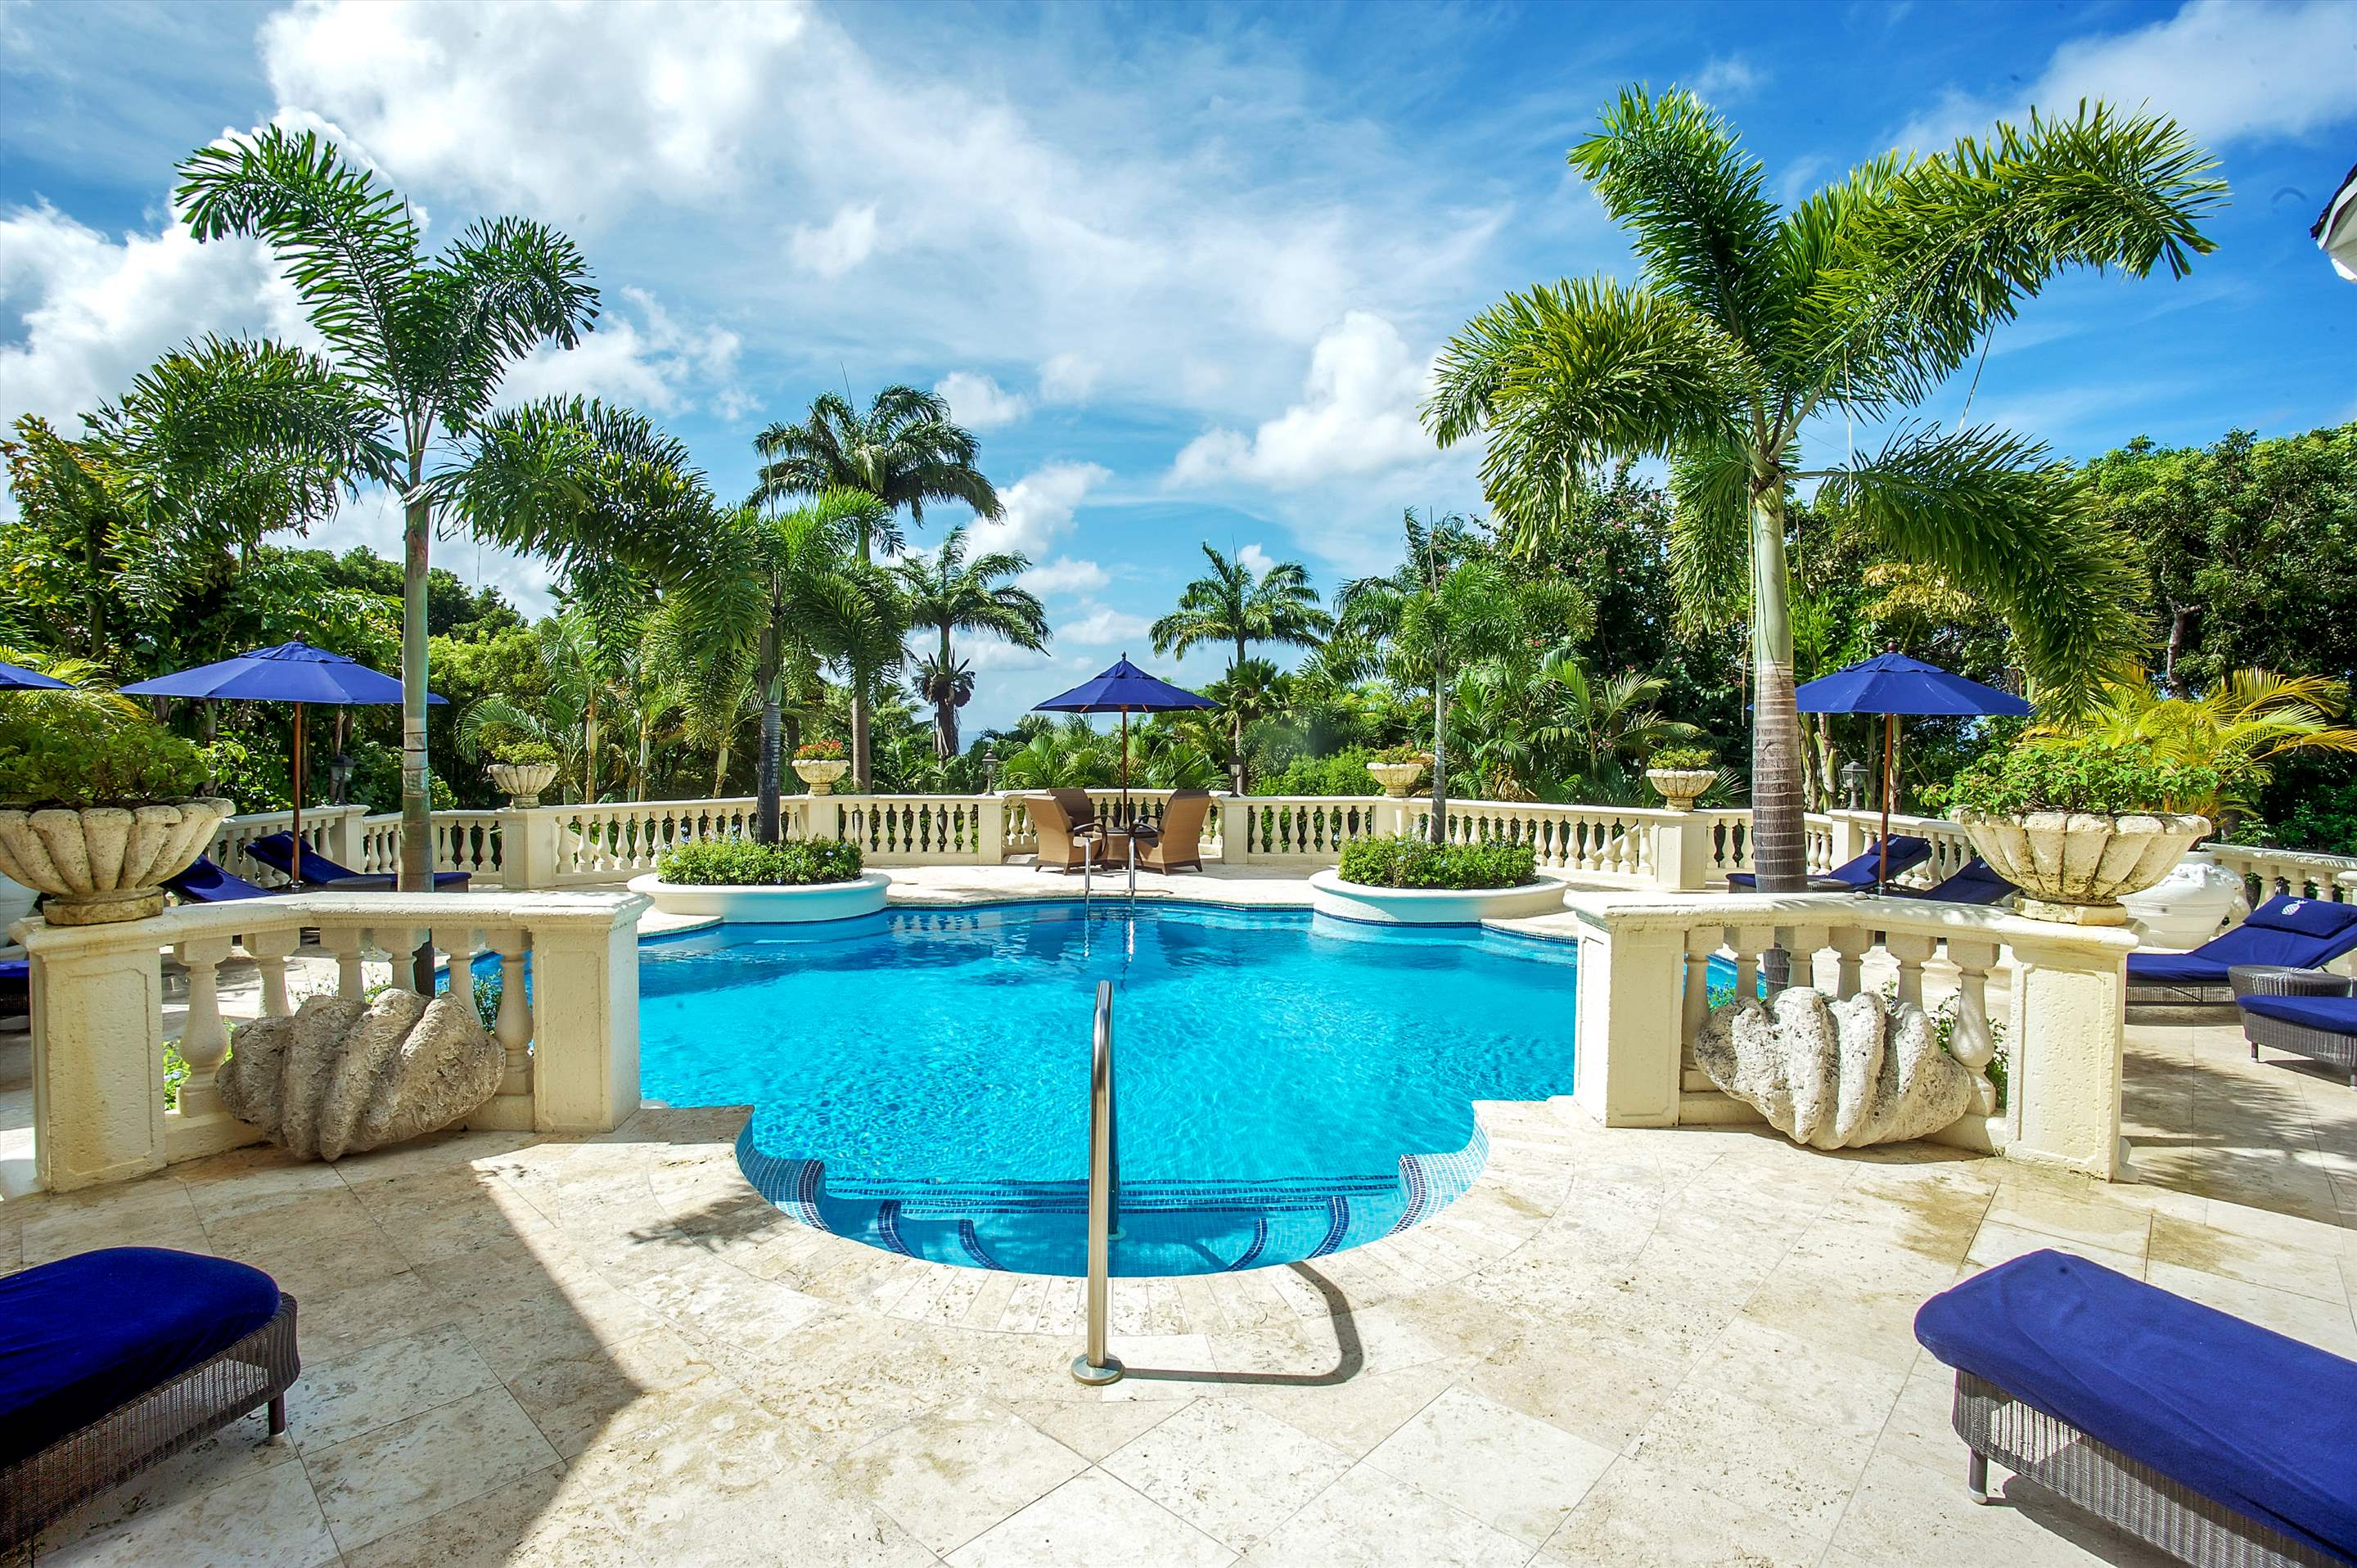 Plantation House, Royal Westmoreland, 6 bedroom, 6 bedroom villa in St. James & West Coast, Barbados Photo #2